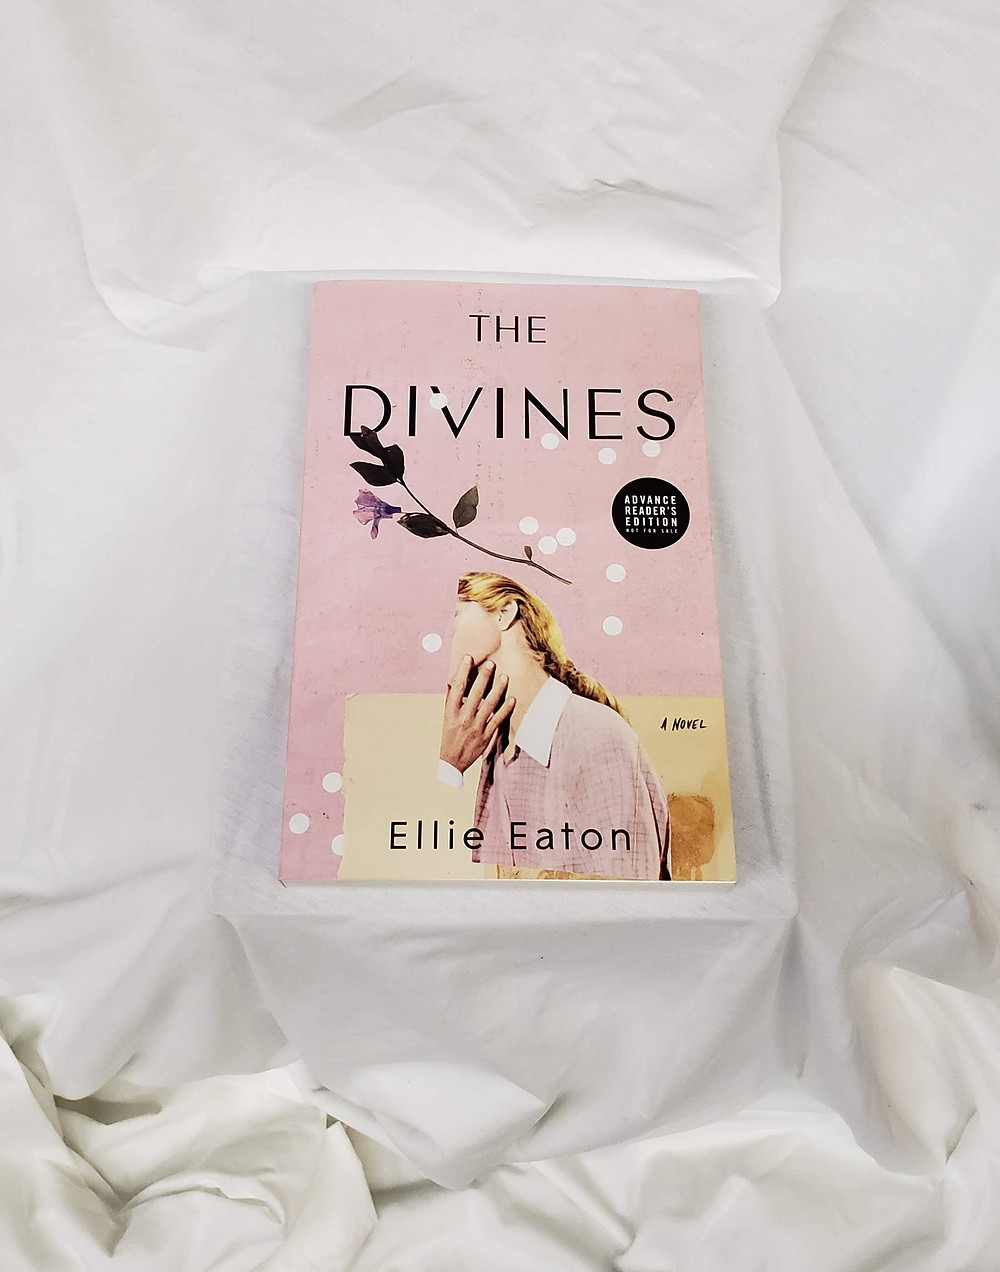 The book The Divines by Ellie Eaton is posed, front cover up, on a white sheet draped around the book.